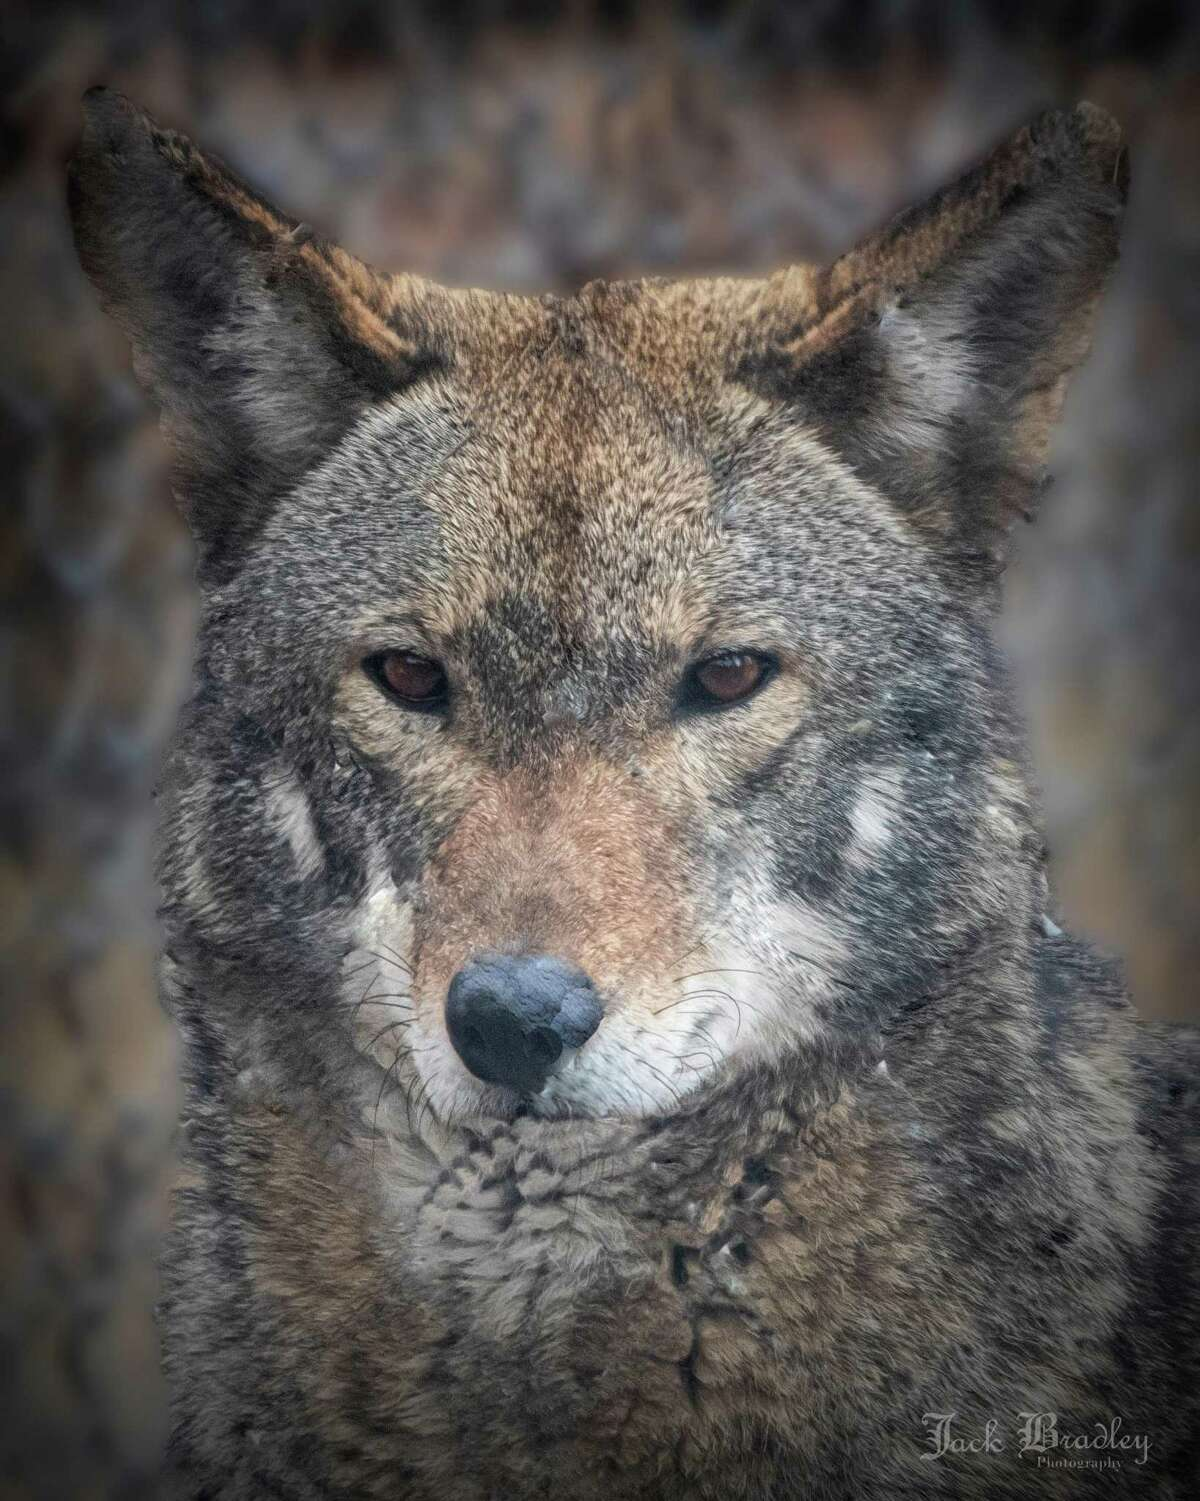 The Beardsley Zoo will host a special lecture about red wolves on May 21 in recognition of Endangered Species Day on May 21.